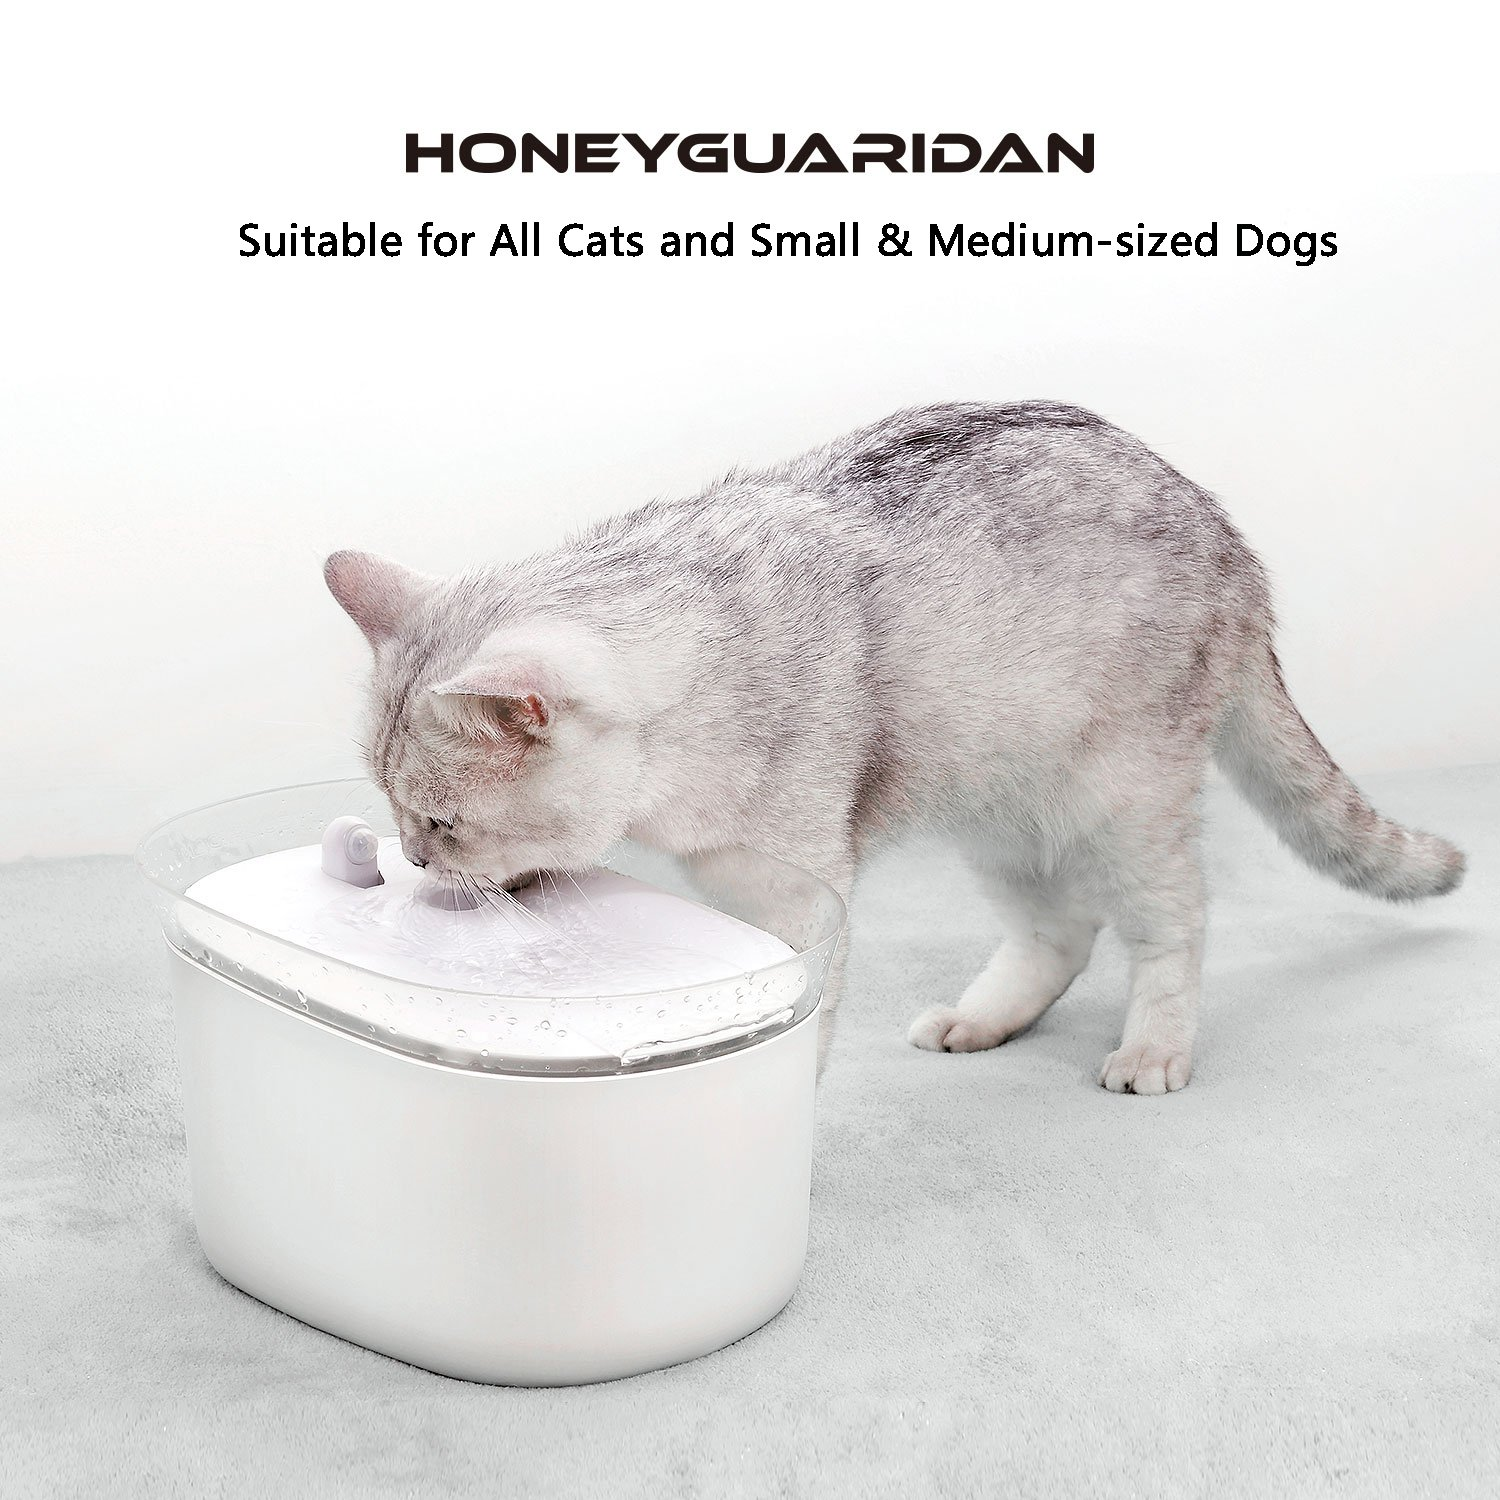 HoneyGuaridan Automatic Pet Water Fountain for Dogs and Cats